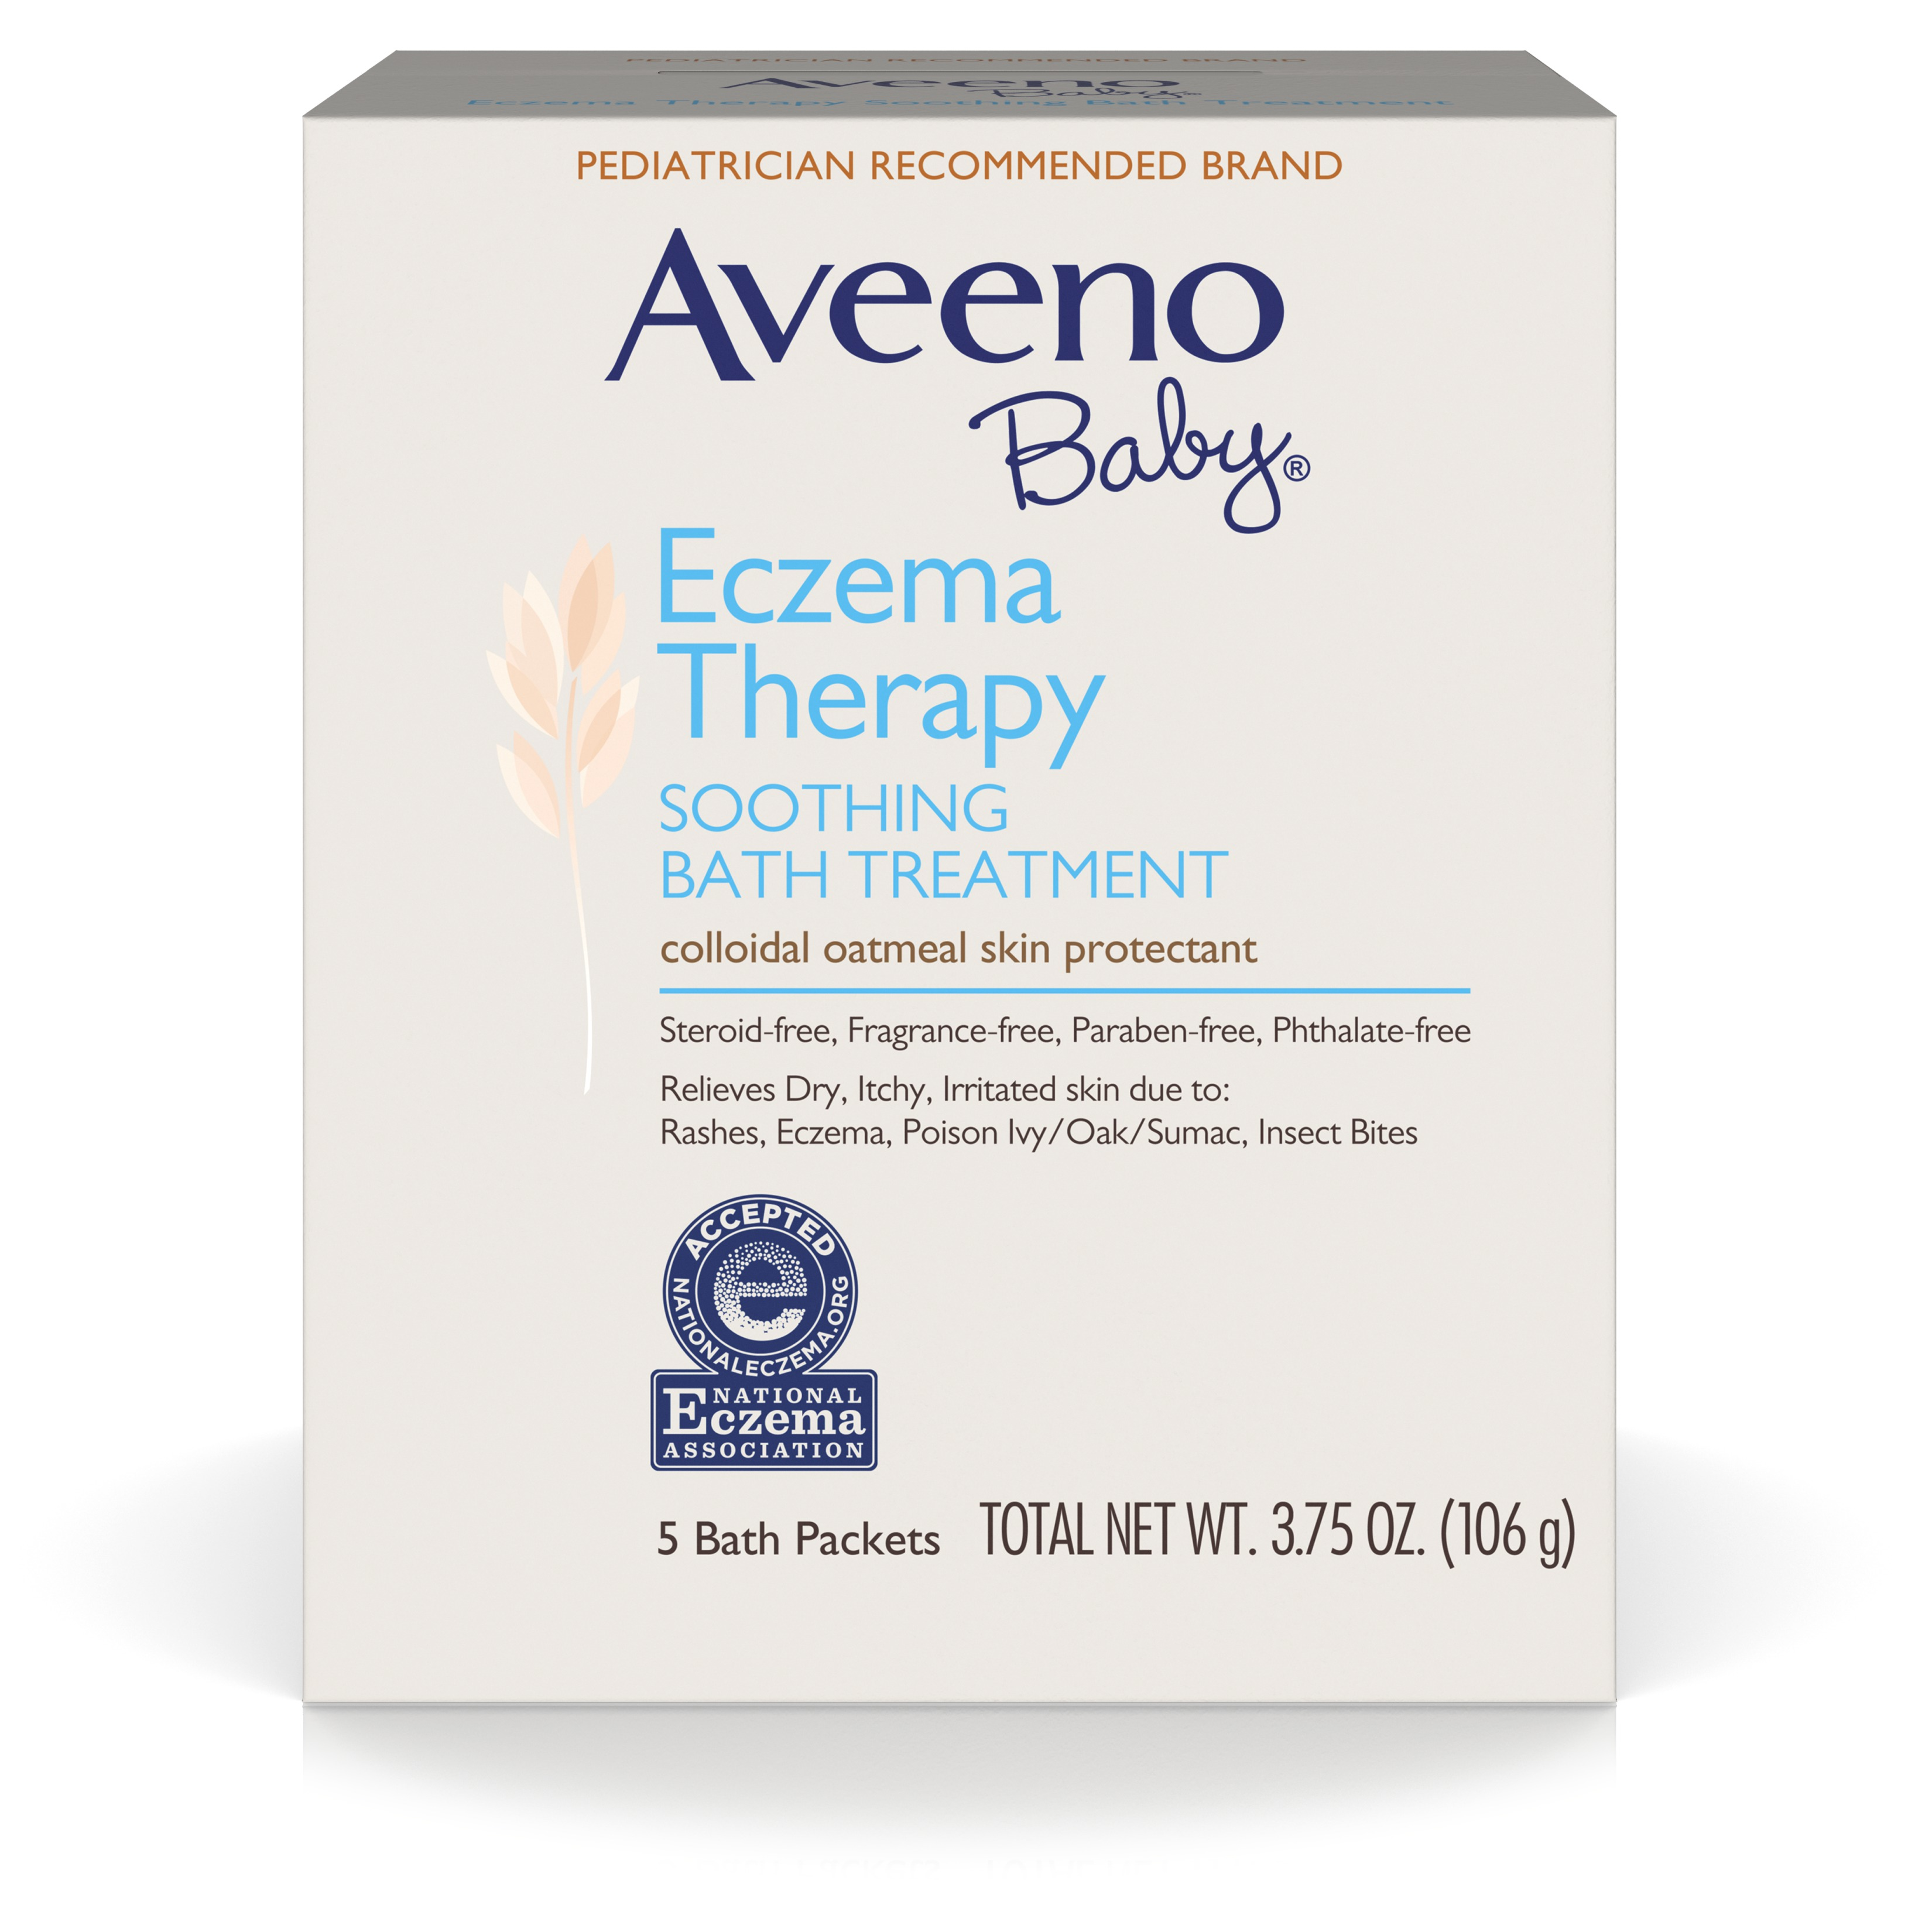 Aveeno Baby Eczema Therapy Soothing Bath Treatment For Minor Skin Irritations, 5 Count - Walmart.com